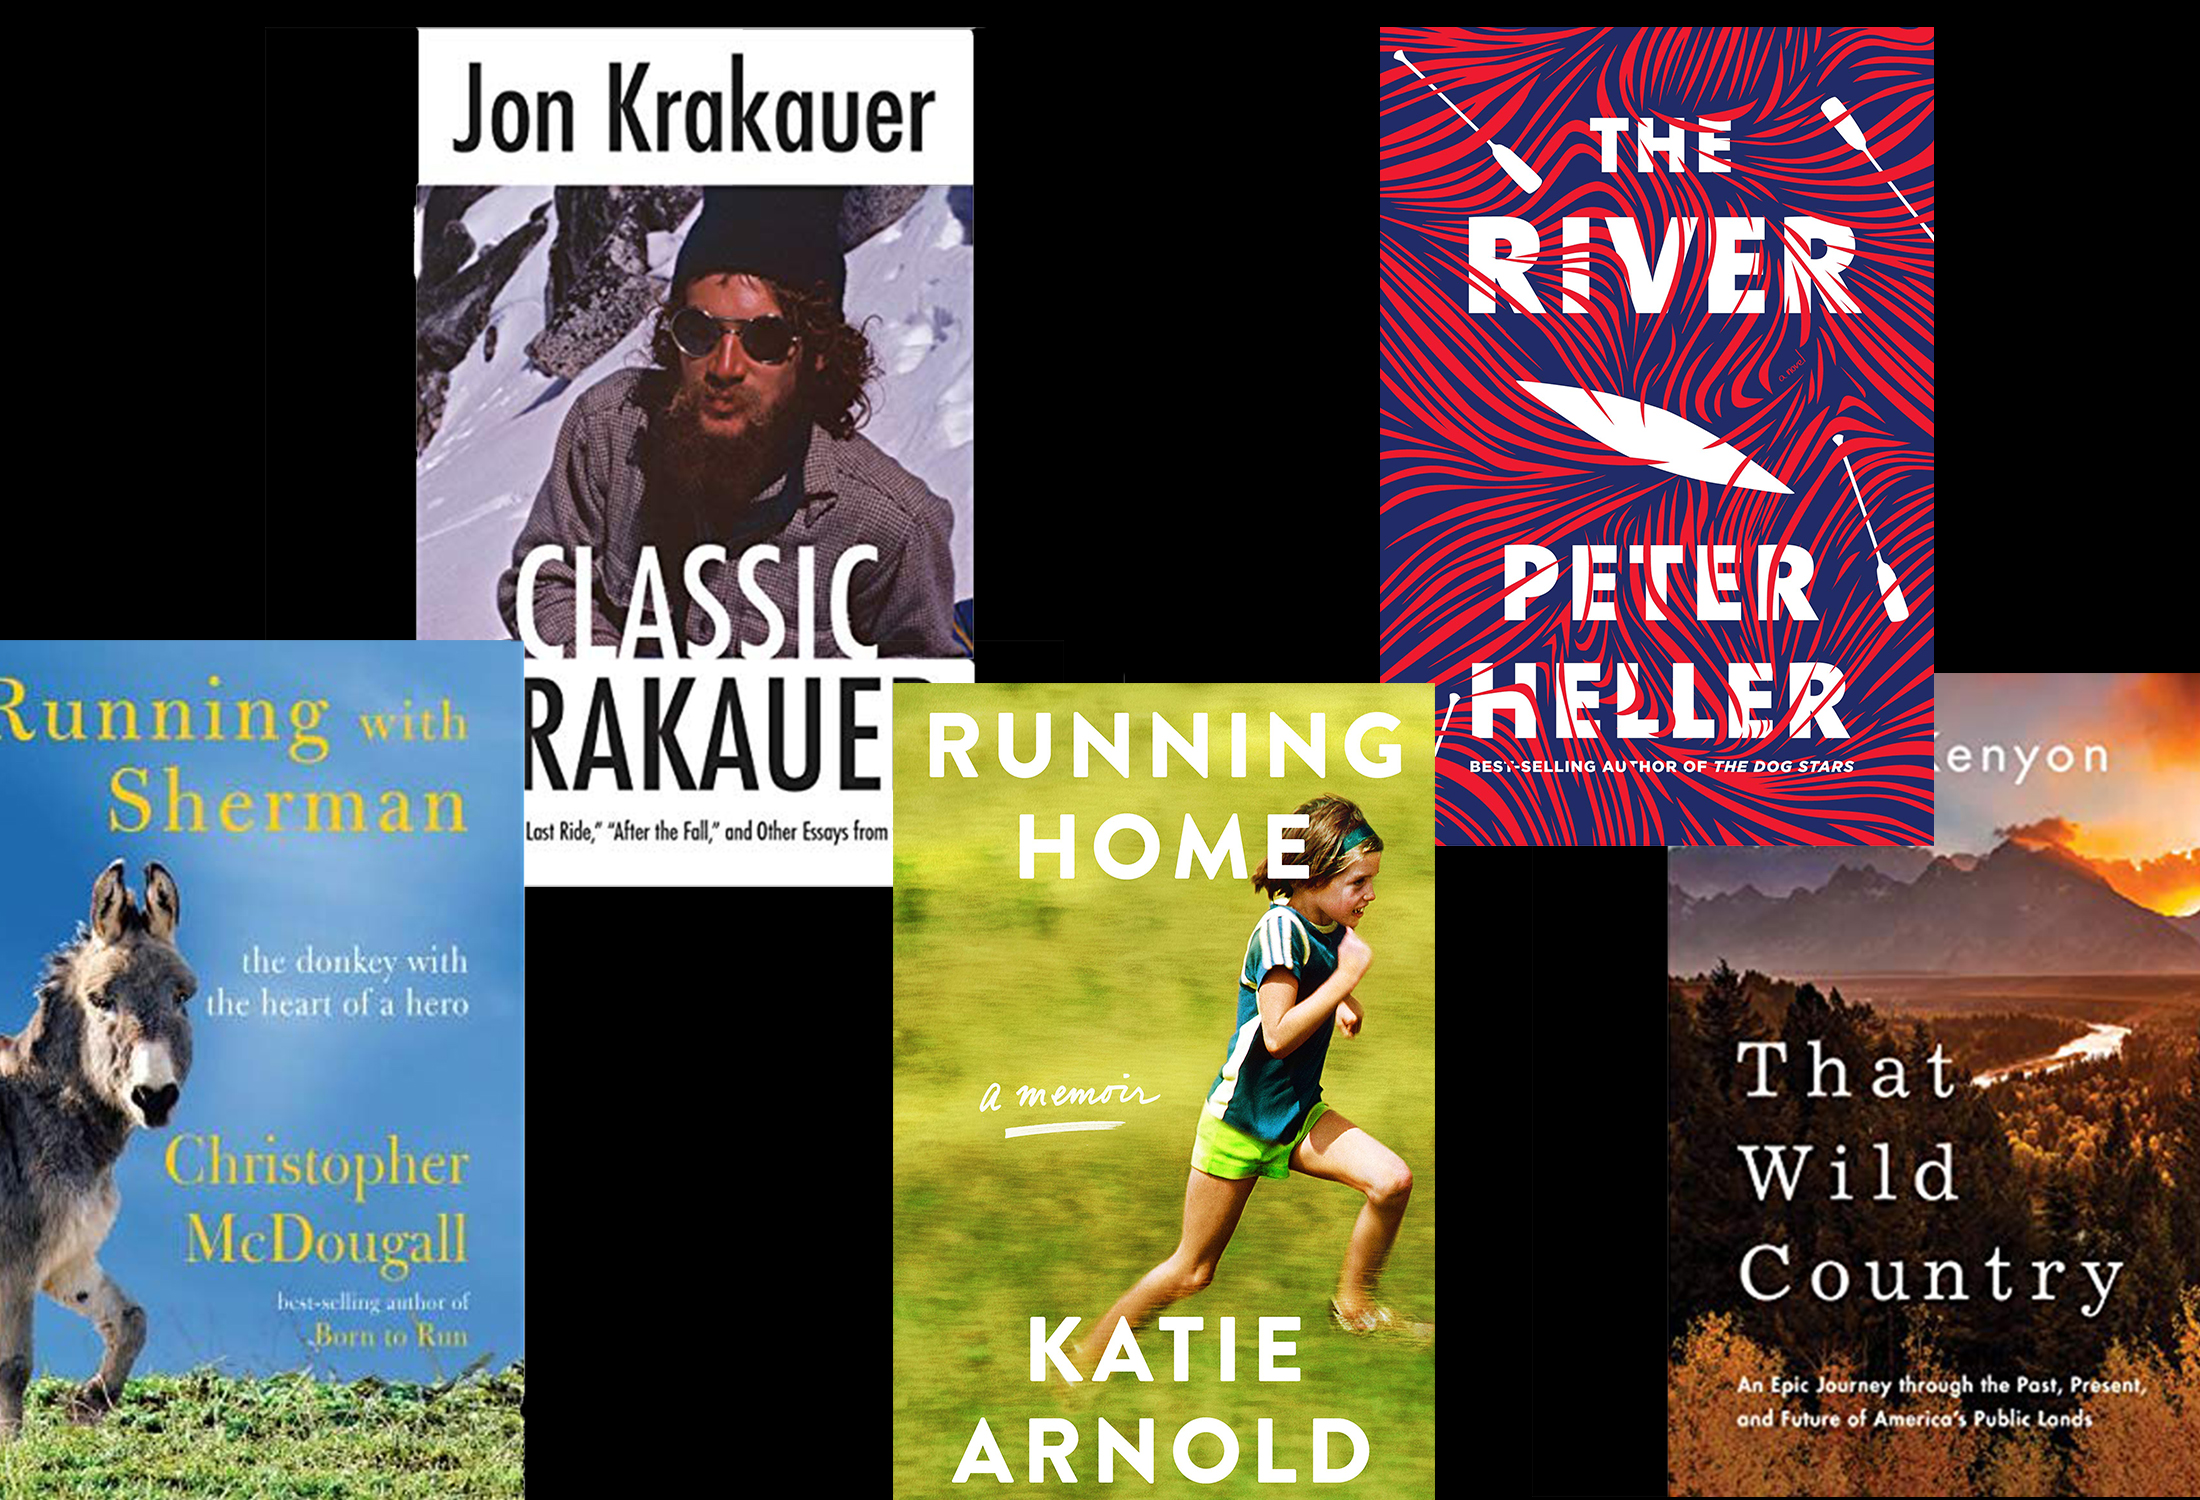 5 outdoor-related book covers against black background